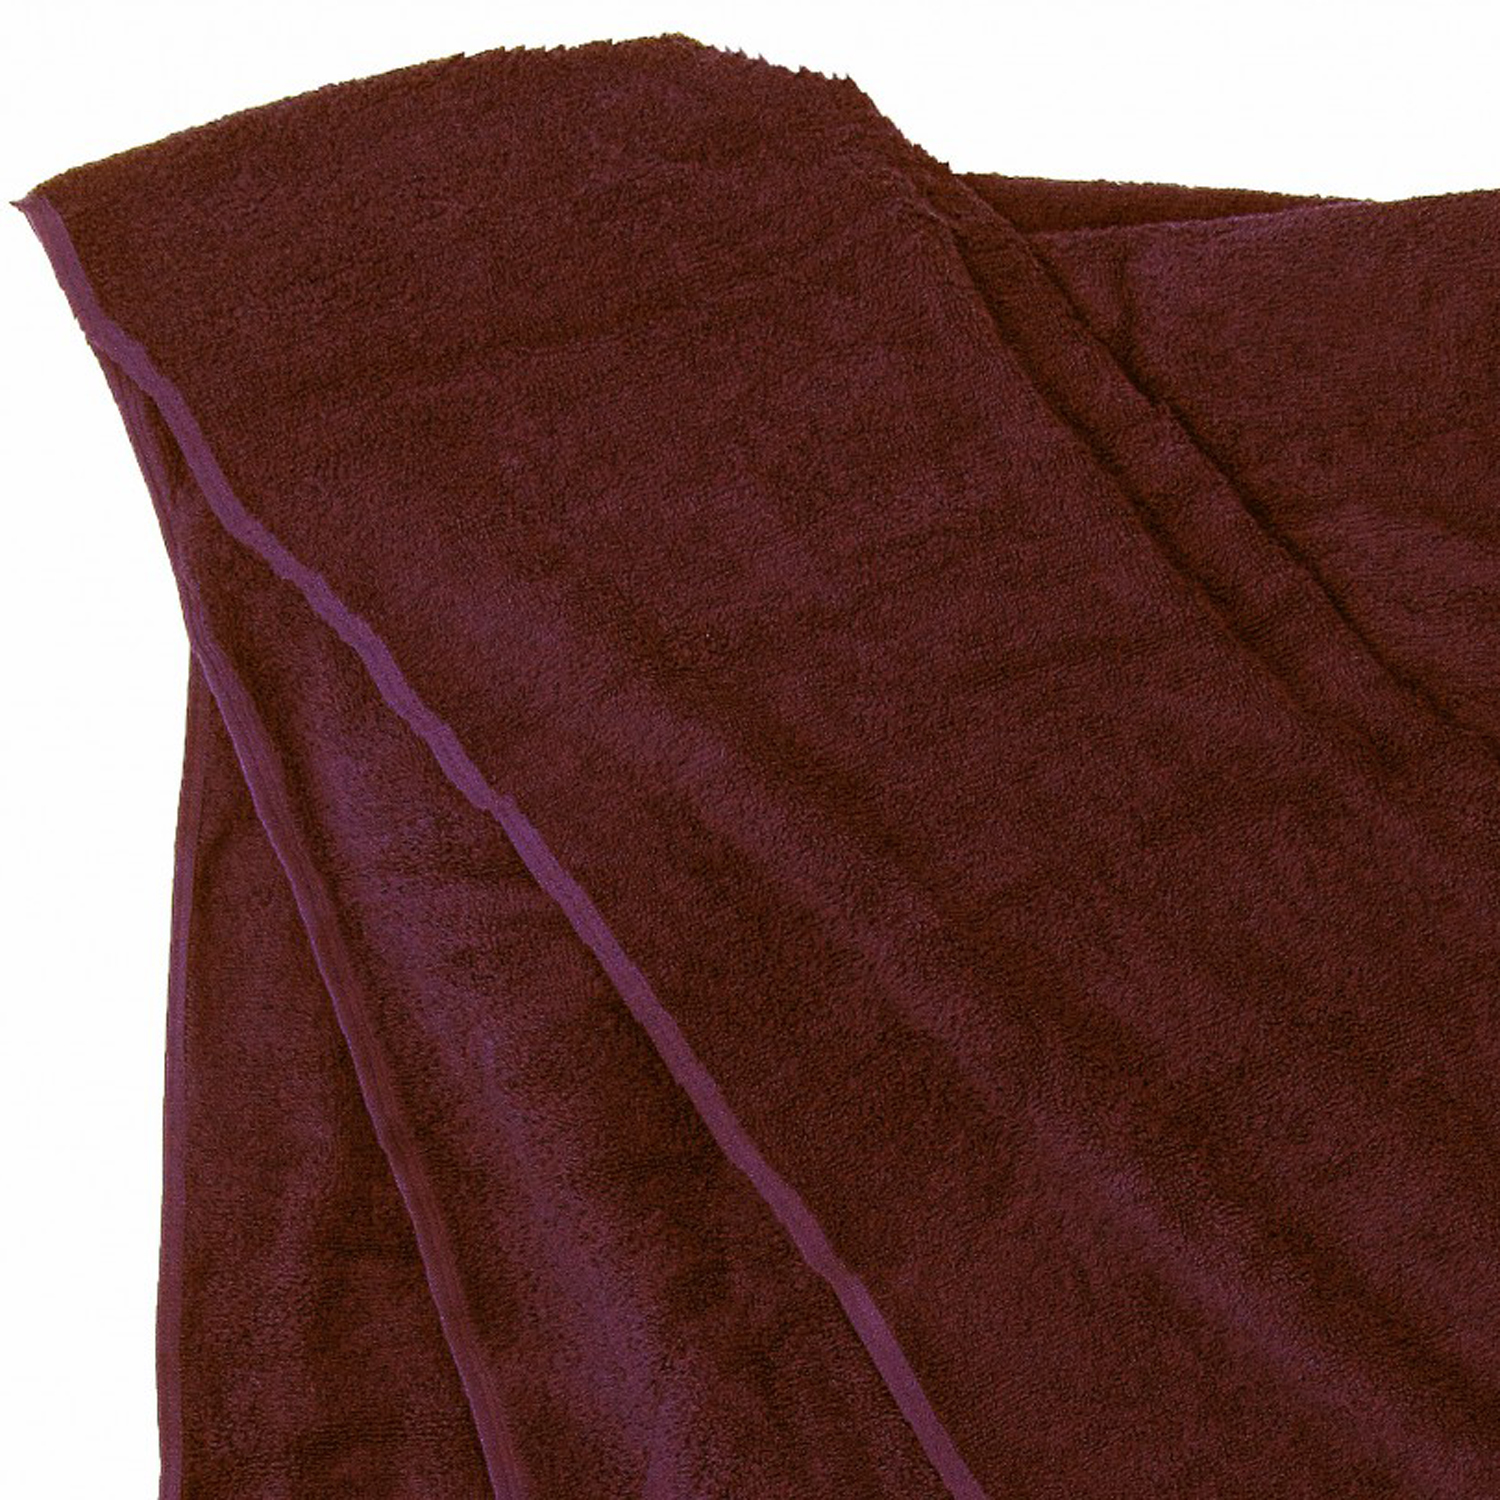 Detail Image to Bath towel in brown by Kapart in large sizes 100x220 cm and 155x220 cm